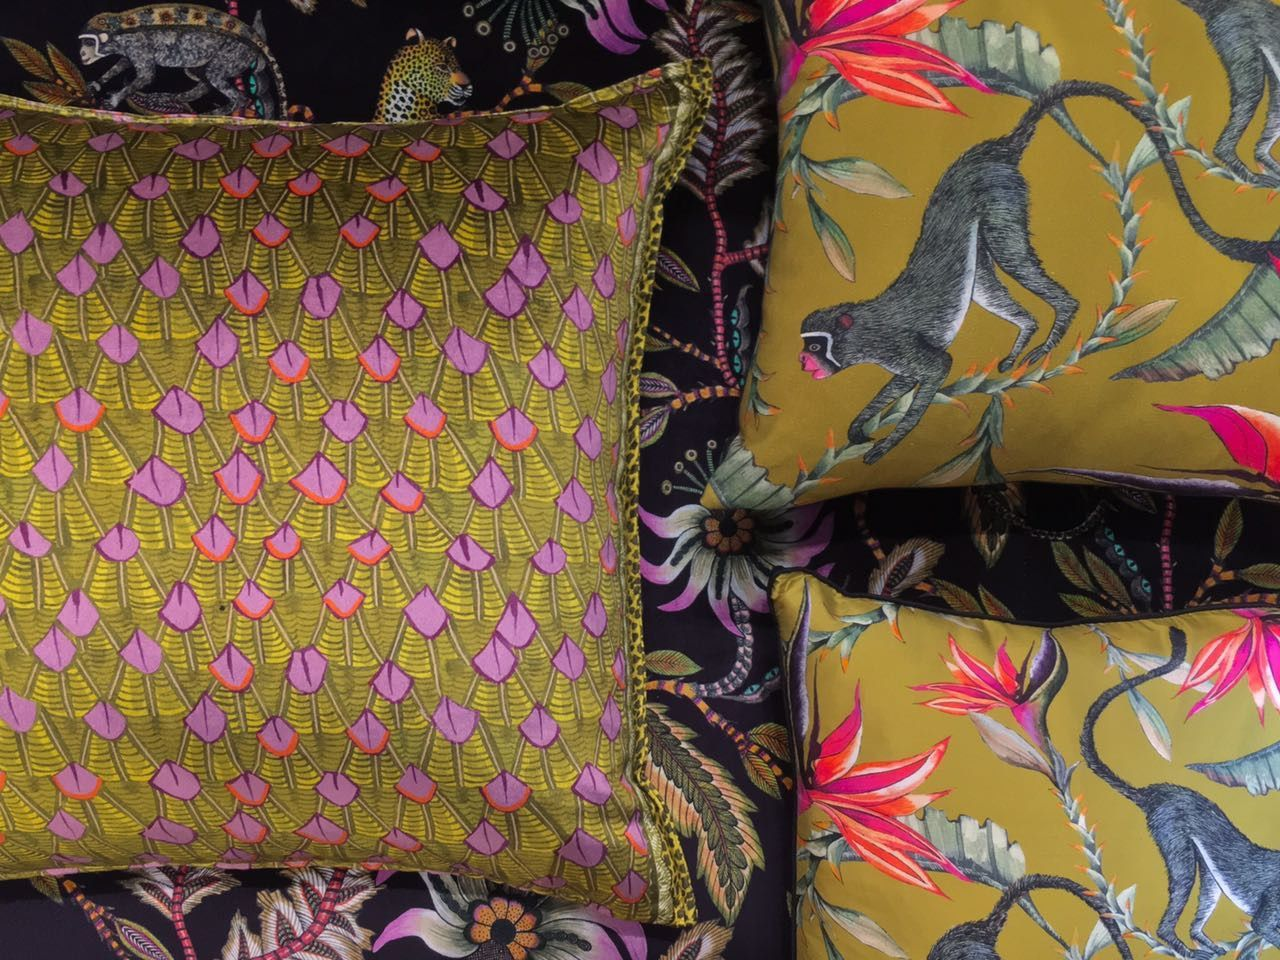 Ardmore Design Scatter Cushions For more, head on over to our webstore - www.Ardmore-Design.com   #design #interiordesign #fabricdesign #decor #homedecor #africanluxury